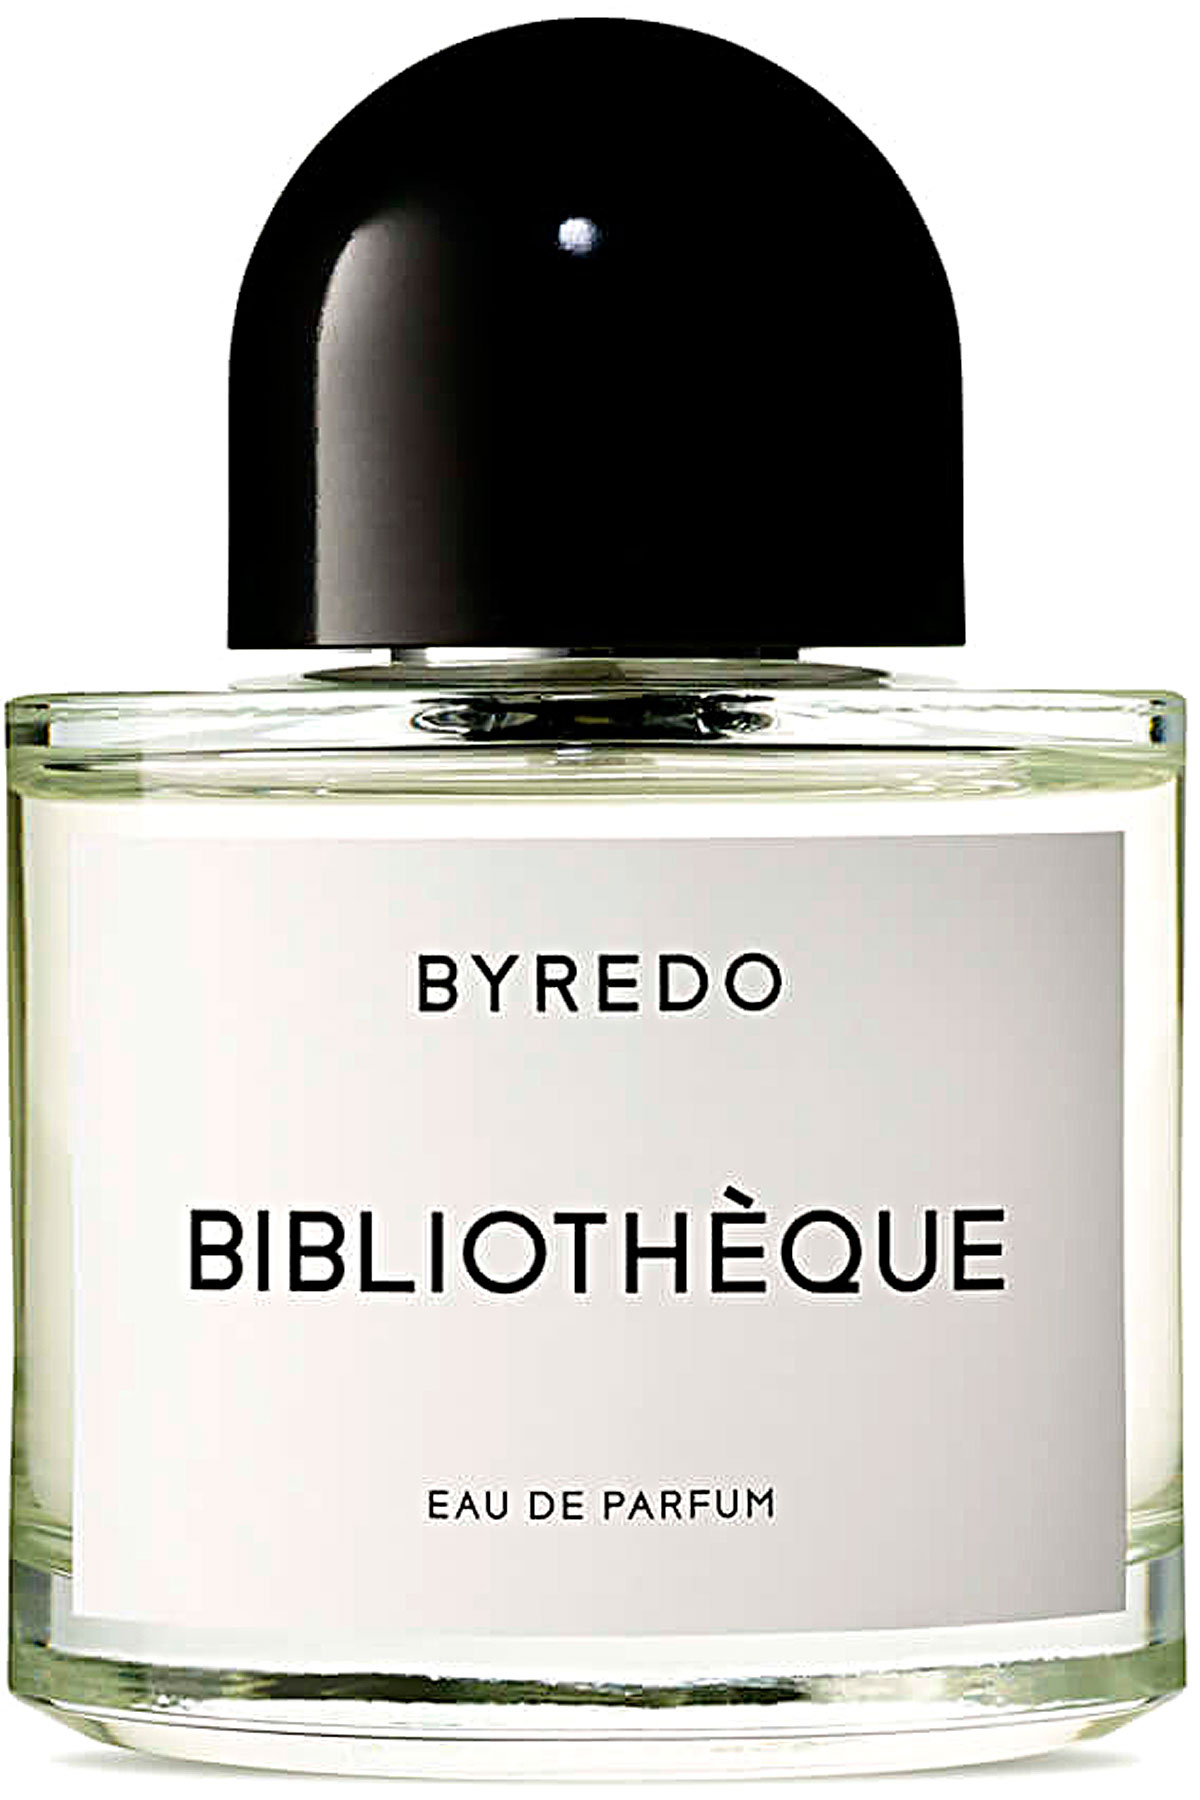 Byredo Fragrances for Men, Bibliotheque - Eau De Parfum - 100 Ml, 2019, 100 ml